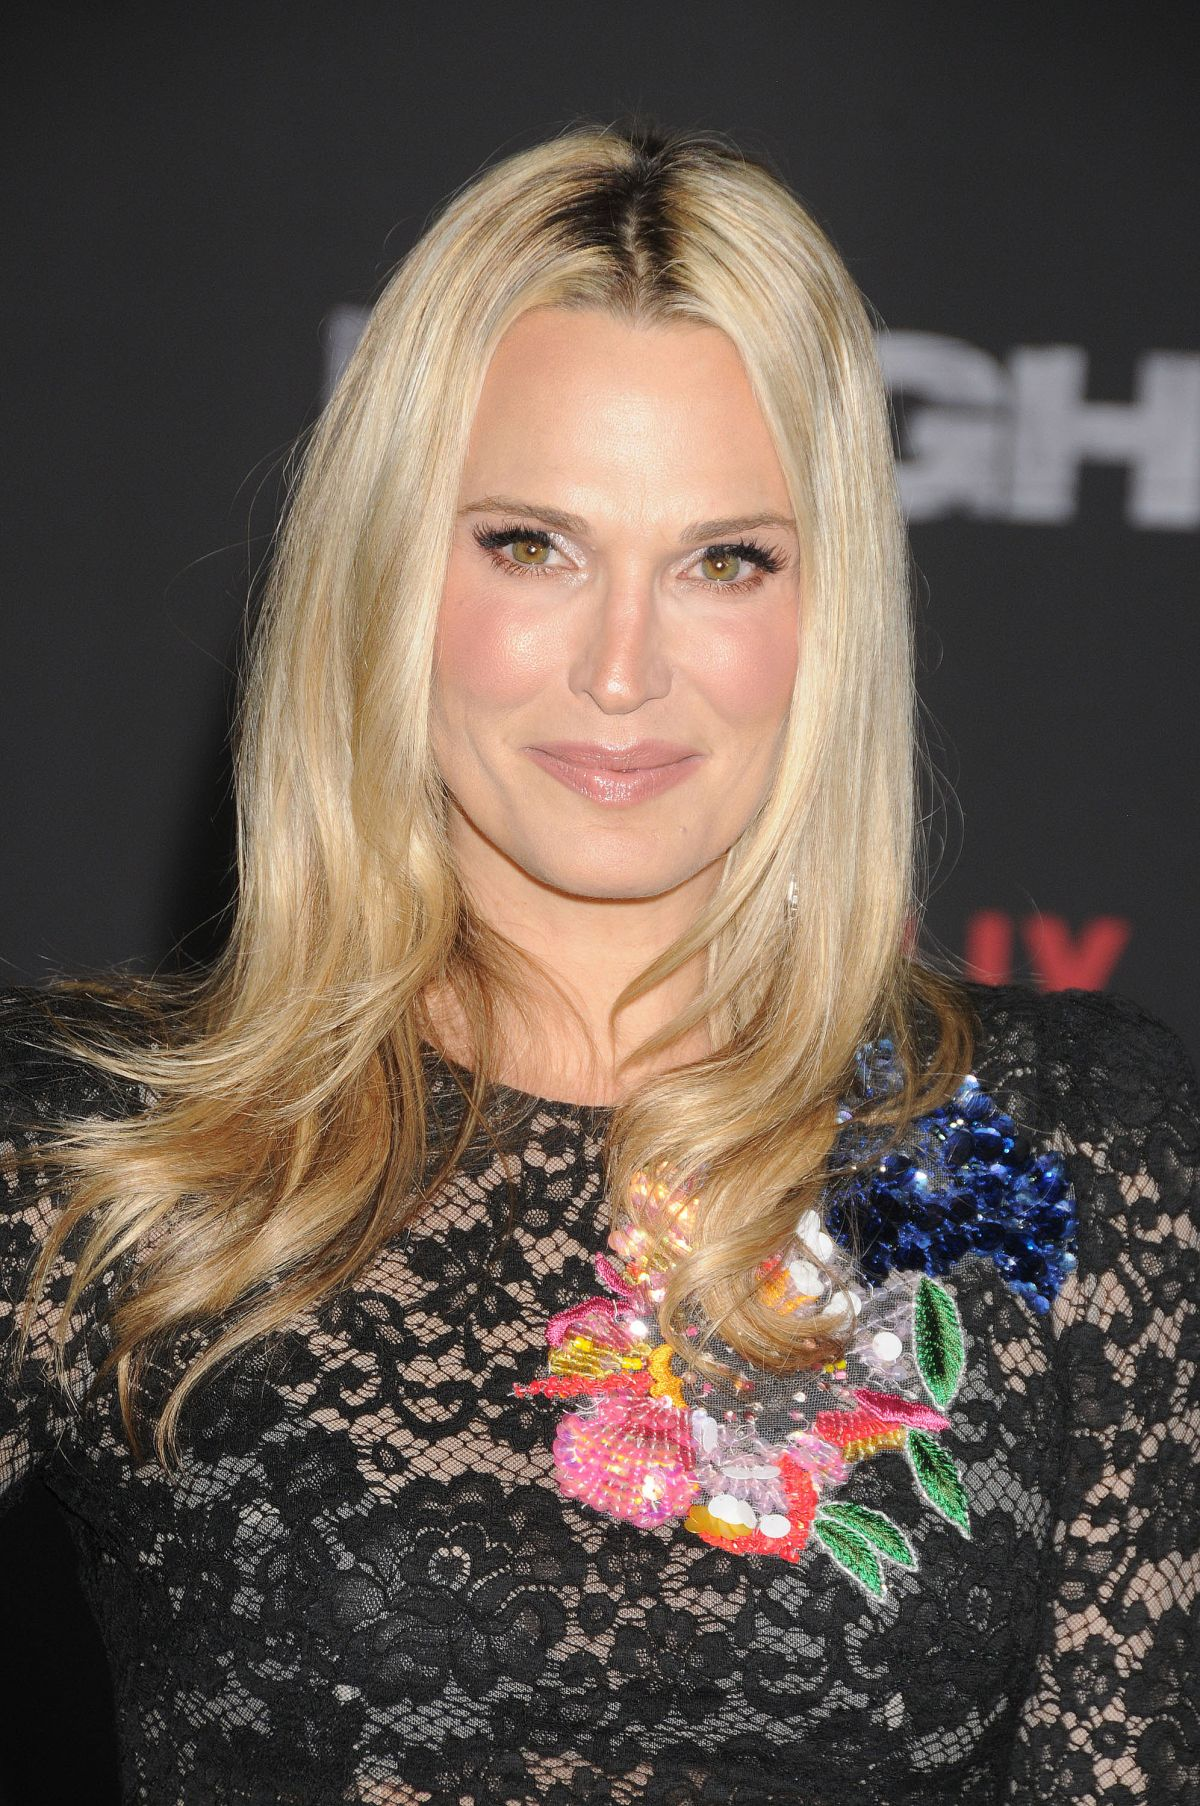 Molly Sims At Premiere Of Netflix's 'Bright' held at the ...